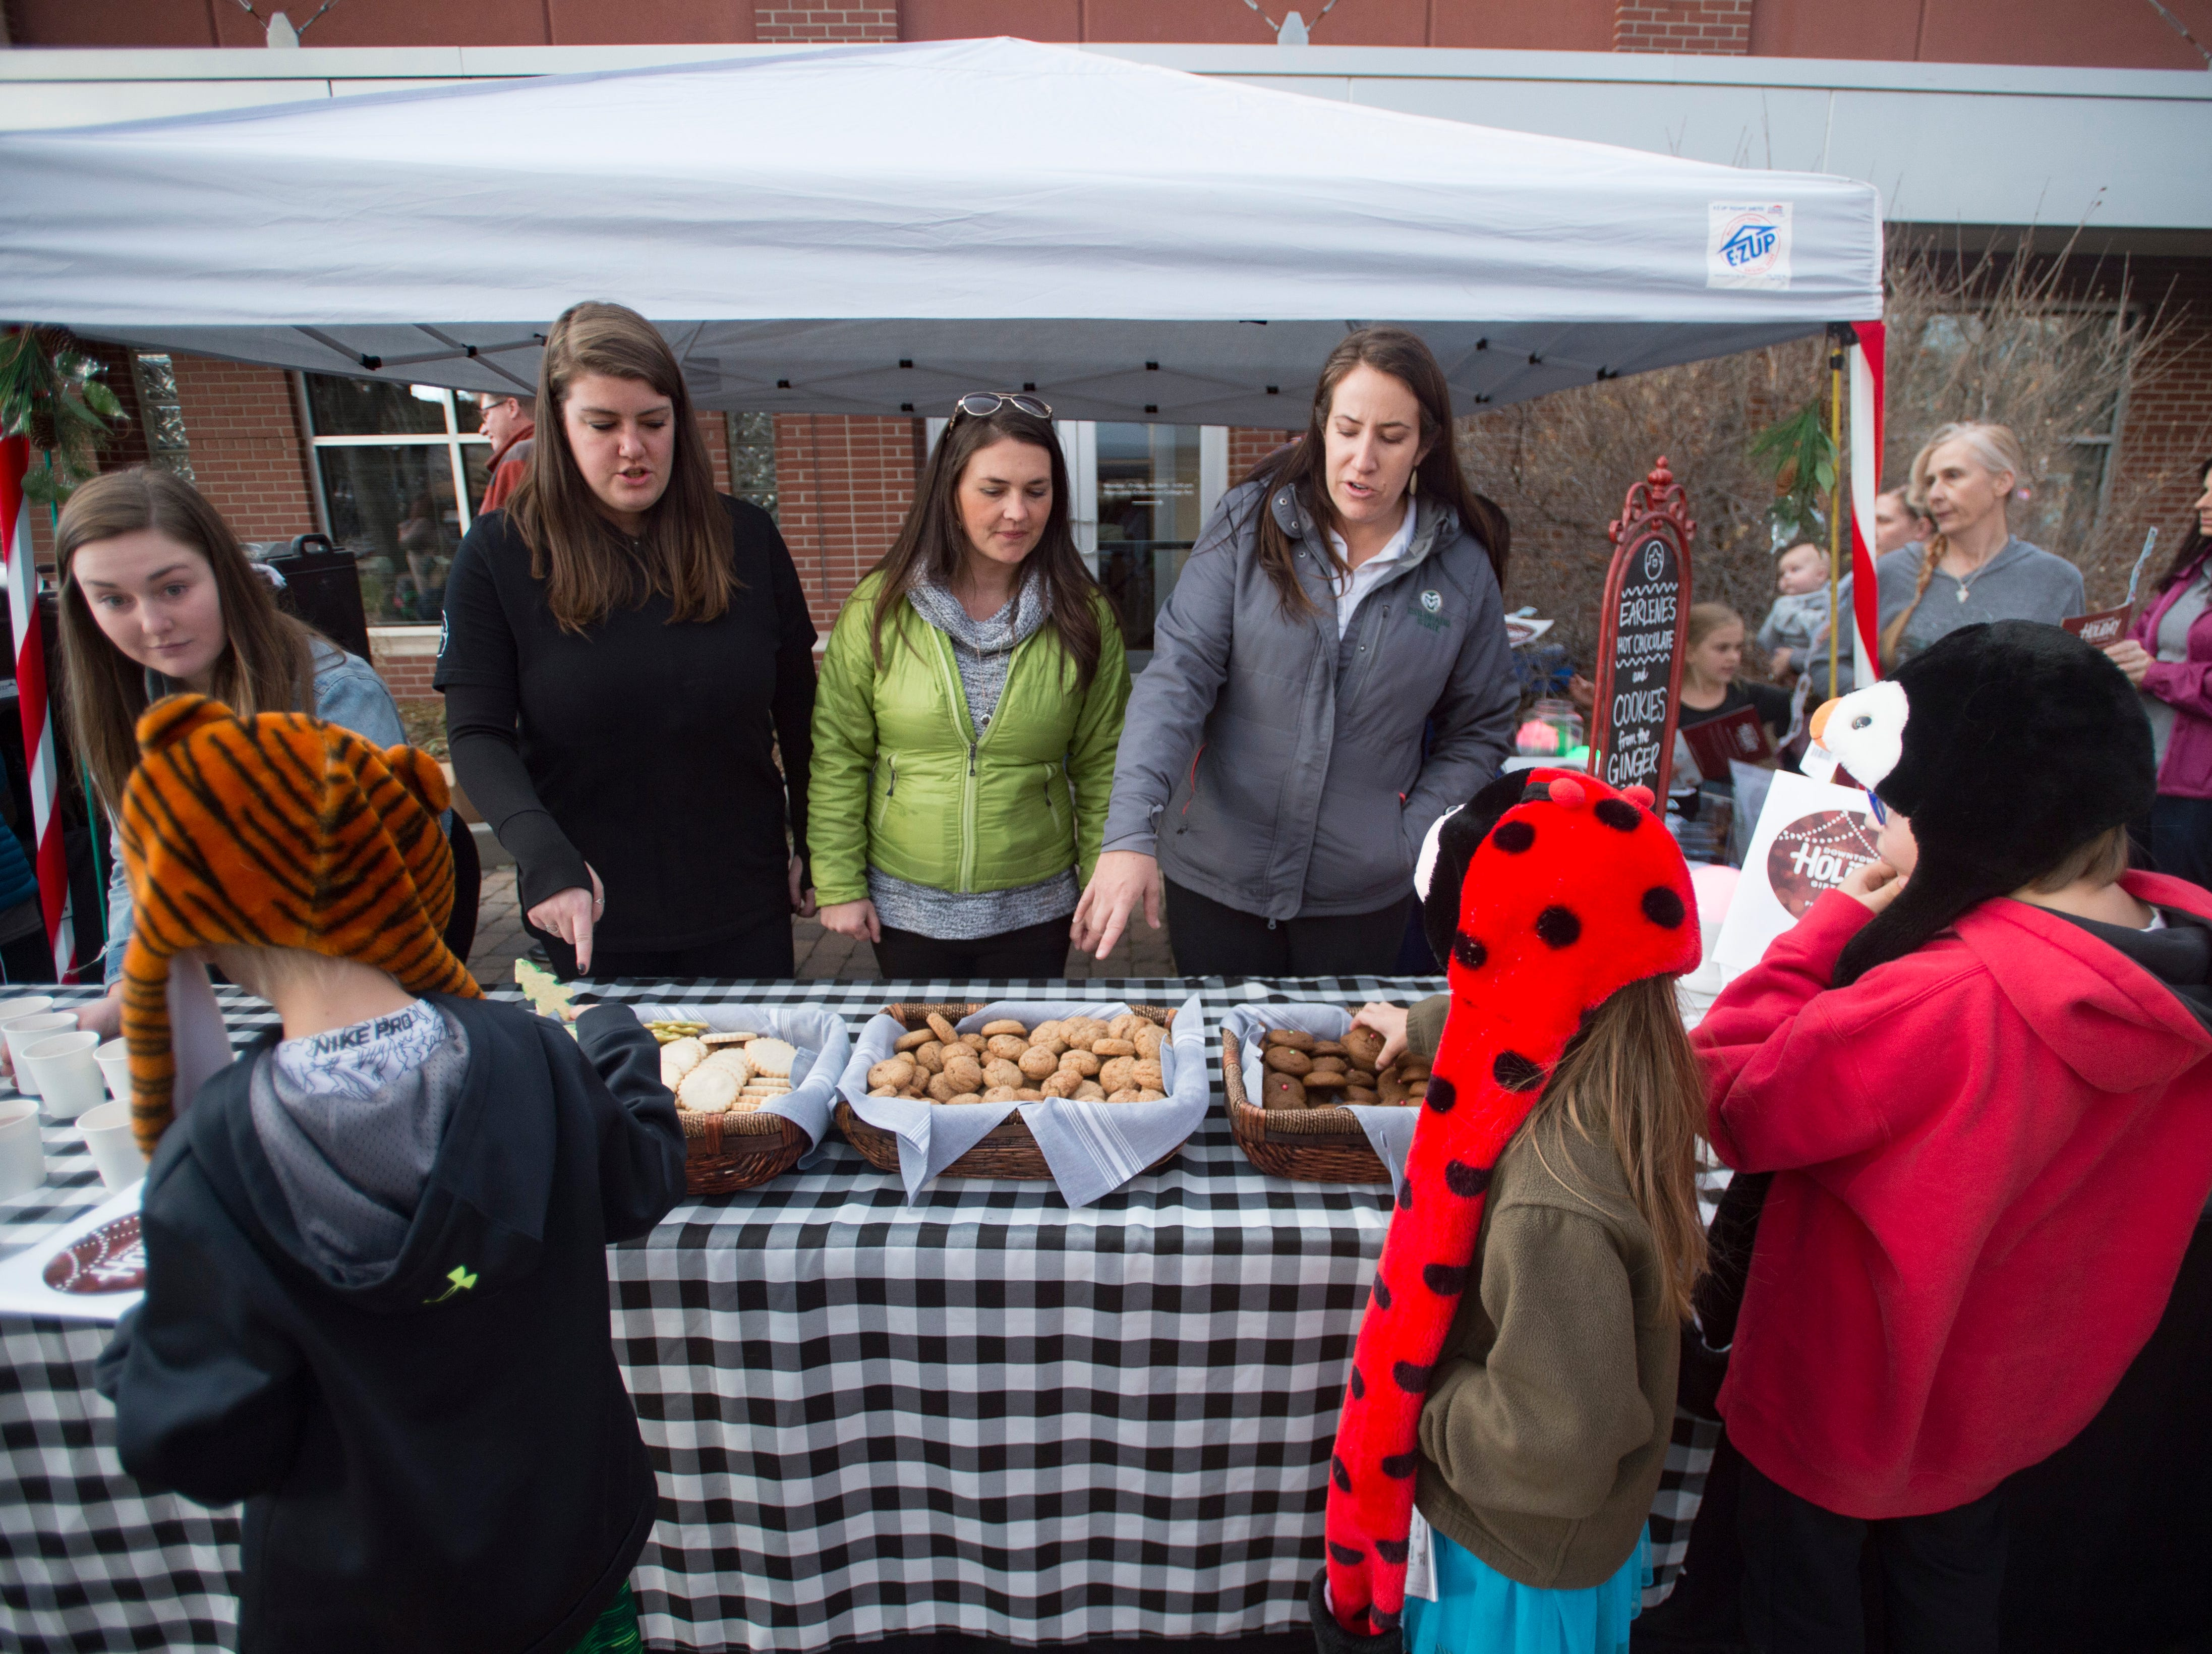 People line up for cookies and hot cocoa in Oak Street Plaza before the holiday lights are turned on in Old Town on Friday, November 2, 2018. College Avenue was closed for public safety during the lighting celebration.